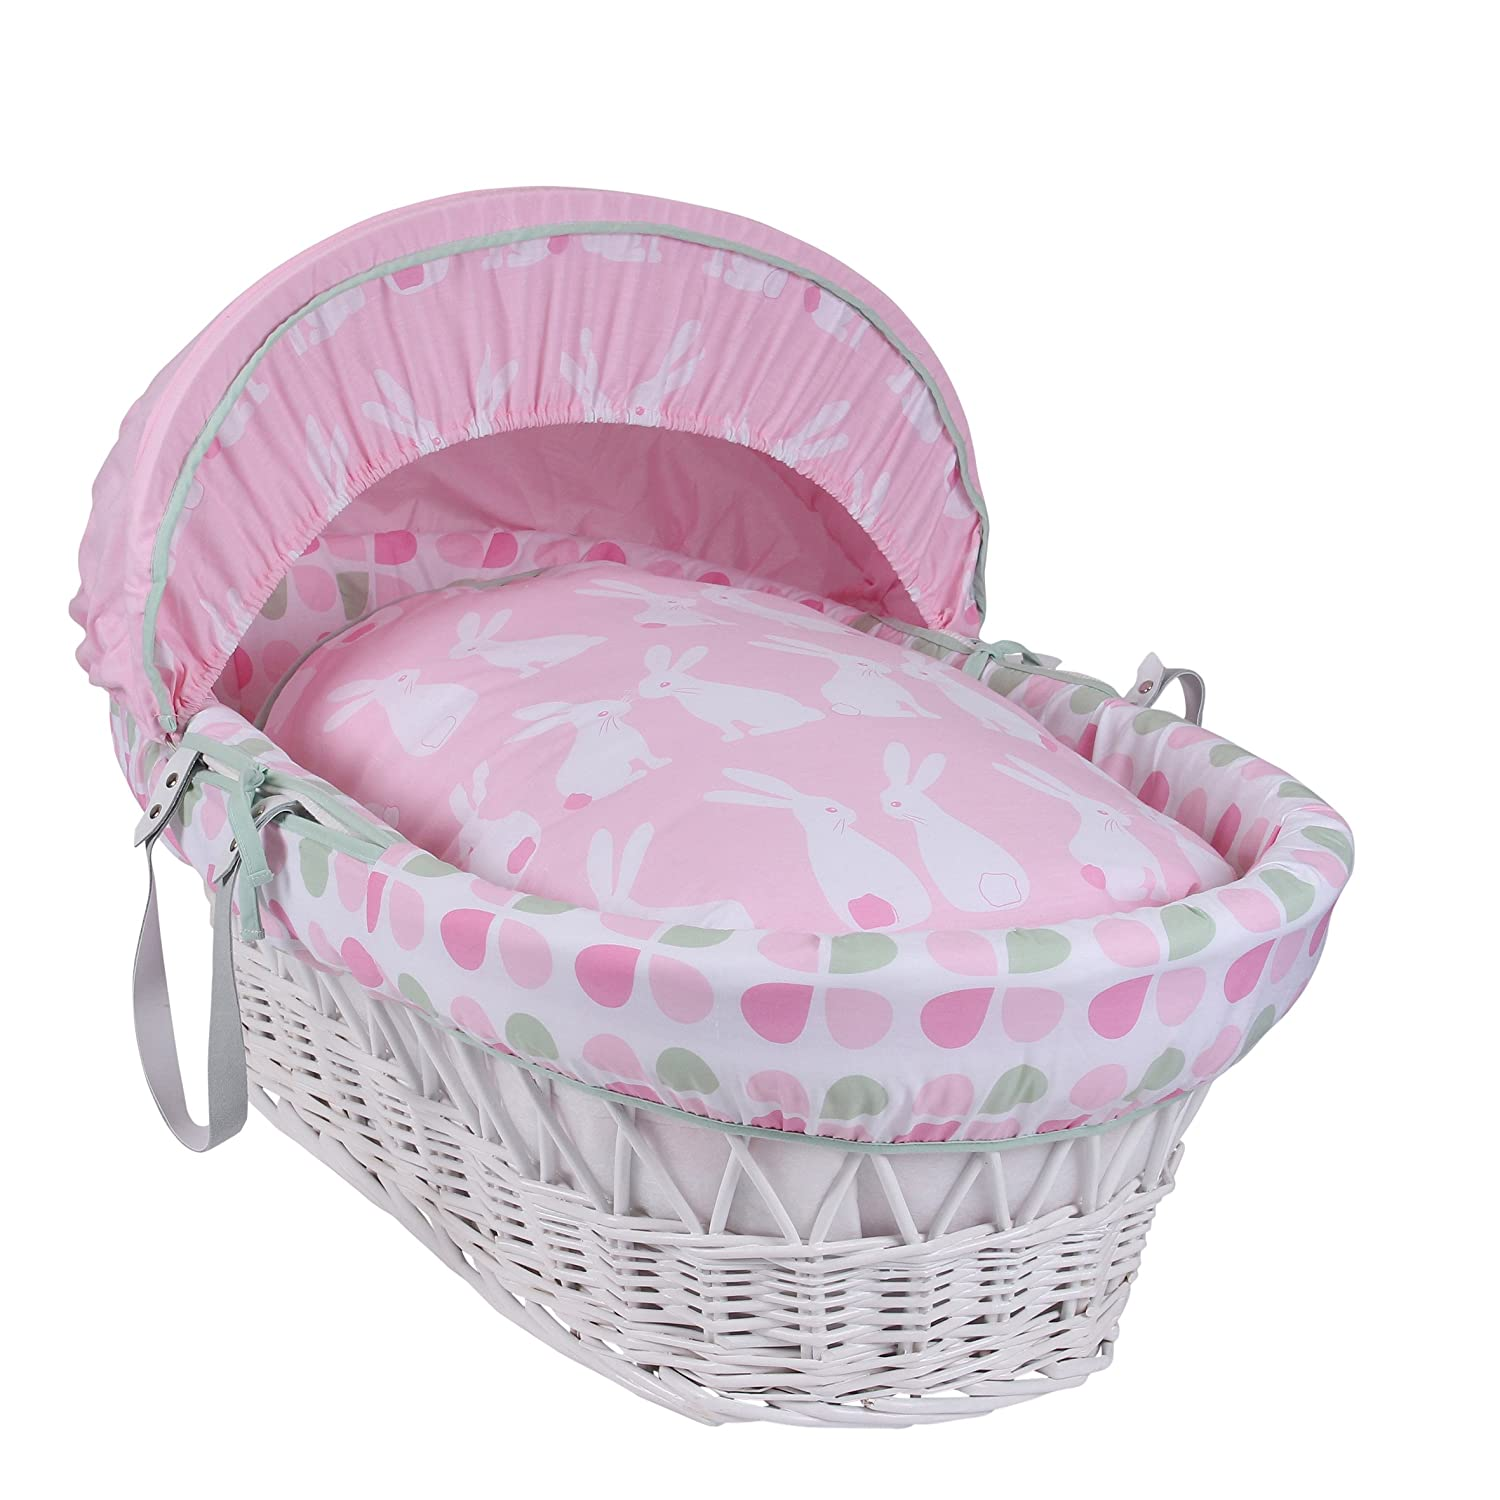 Clair de Lune Rabbits White Wicker Moses Basket inc. bedding, mattress & adjustable hood (Pink) CL5659W